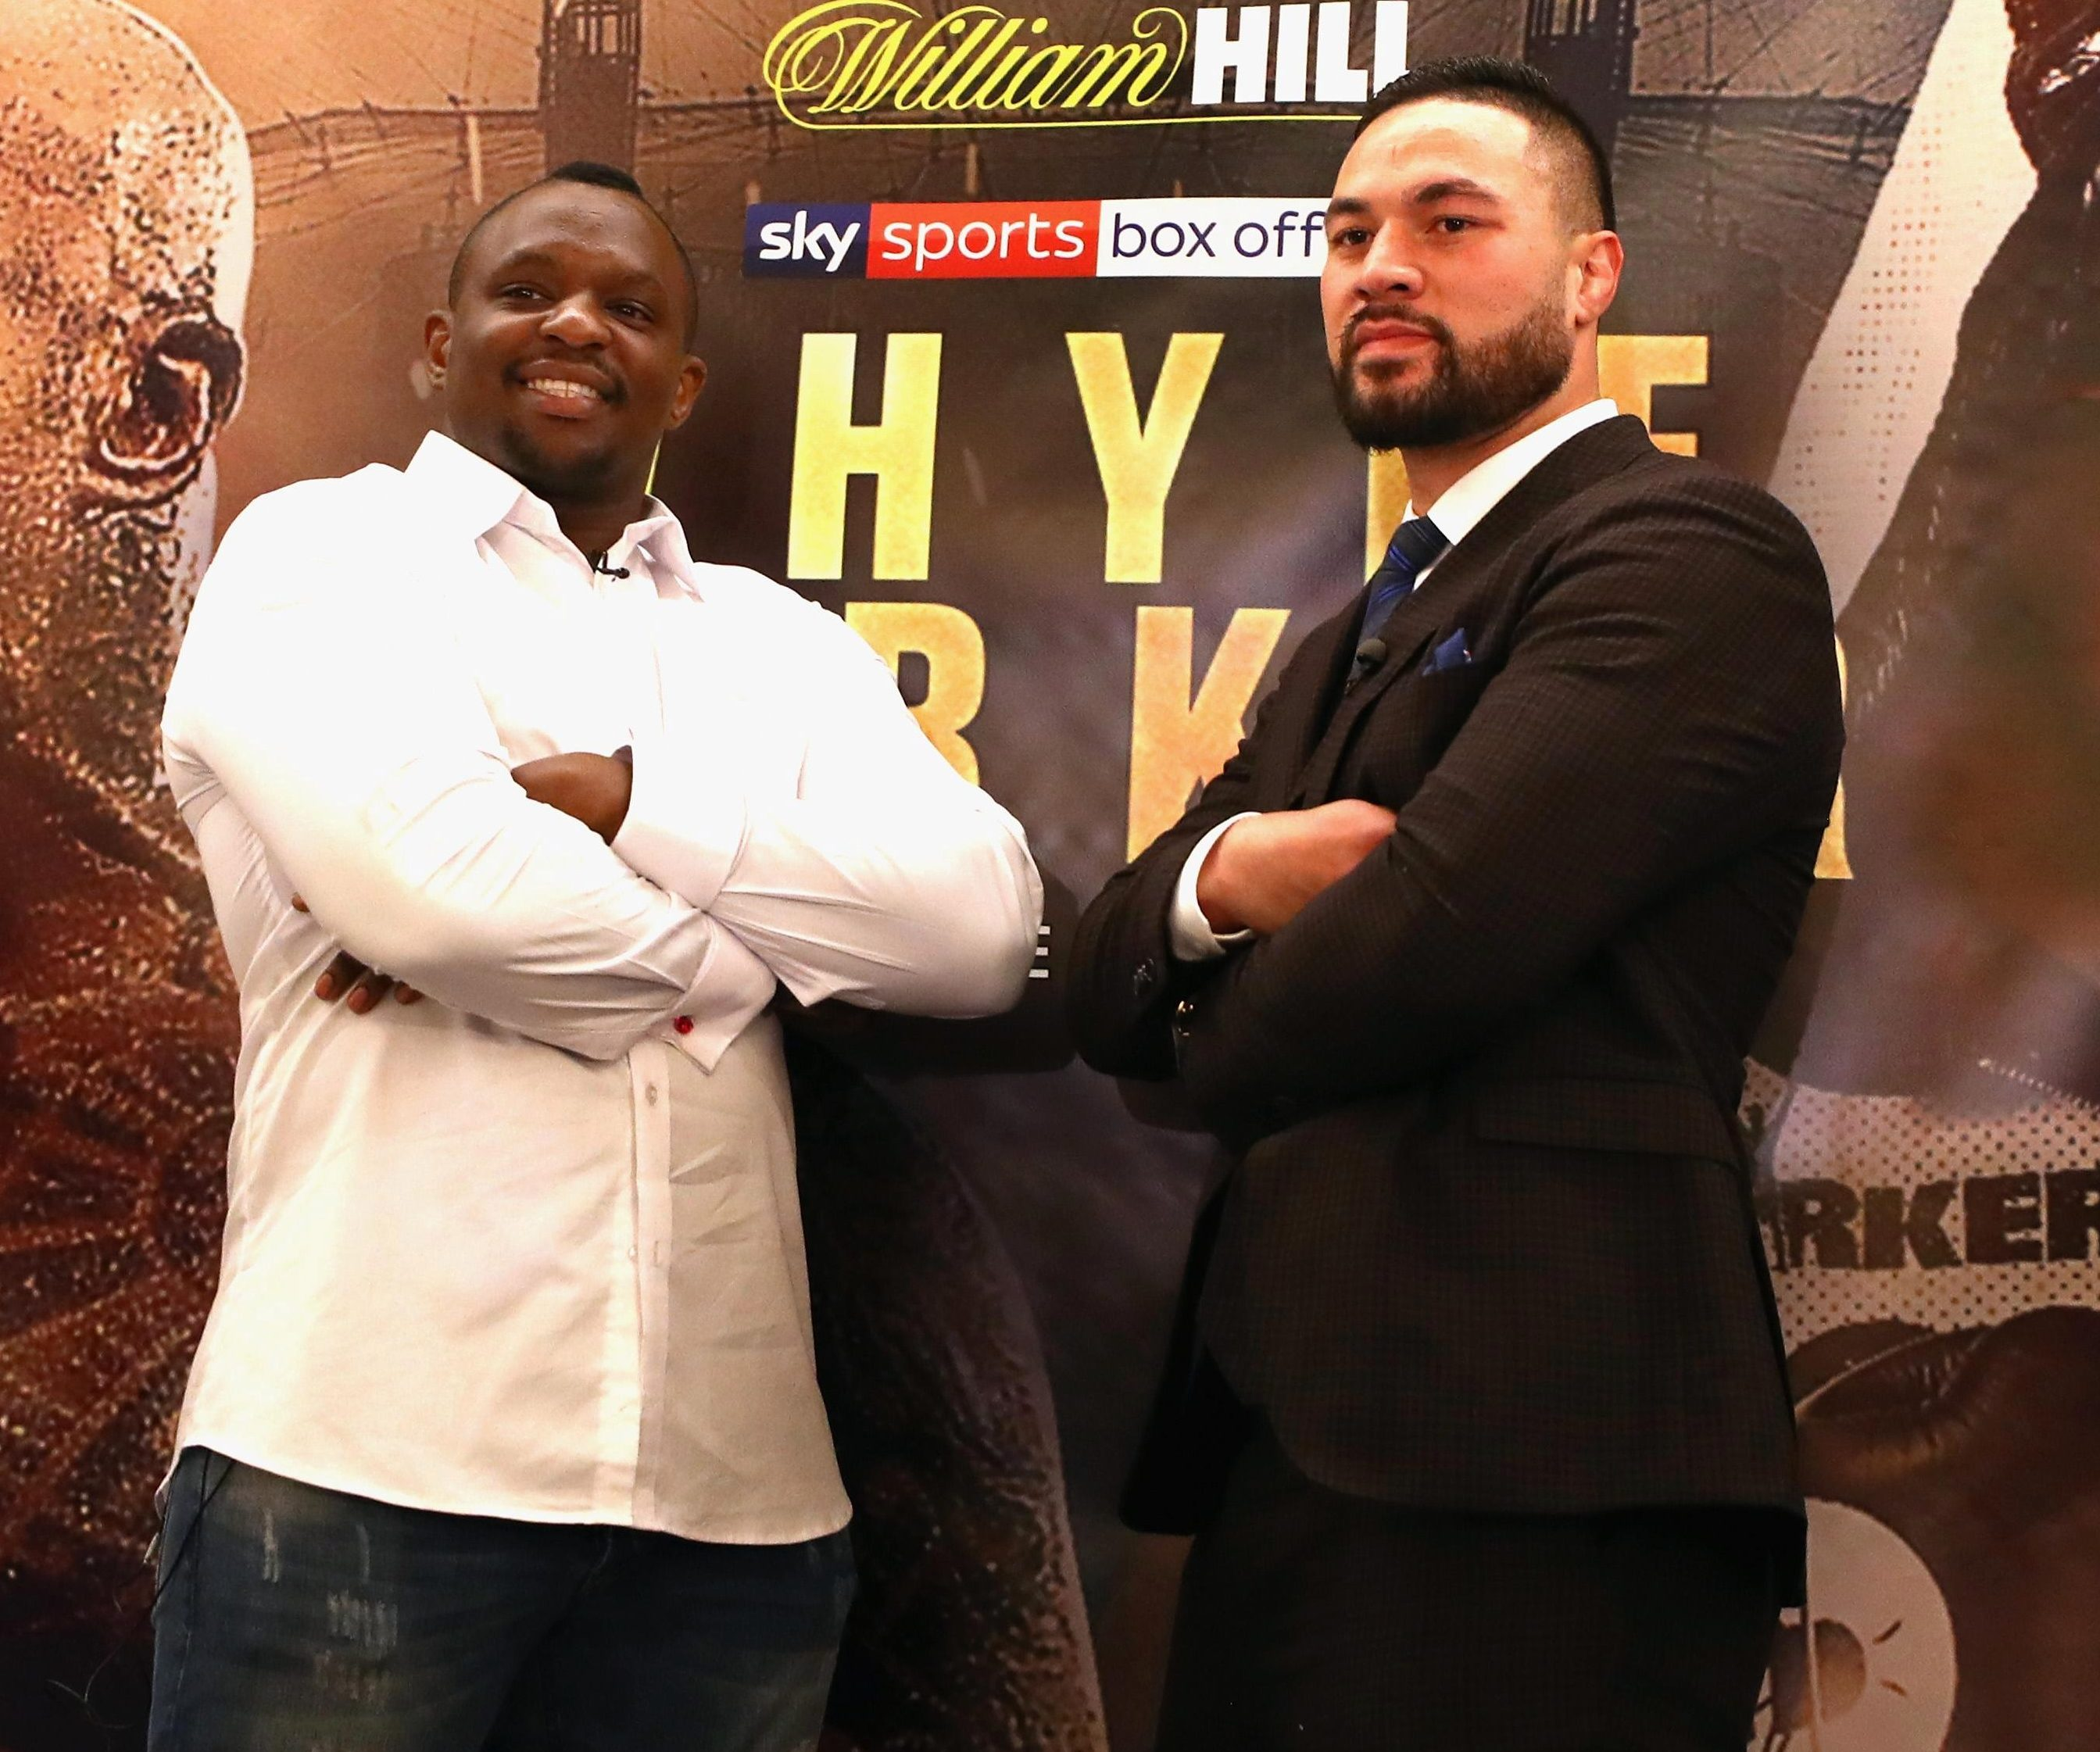 Dillian Whyte is set to face Joseph Parker in September - and also hit out at Tyson Fury